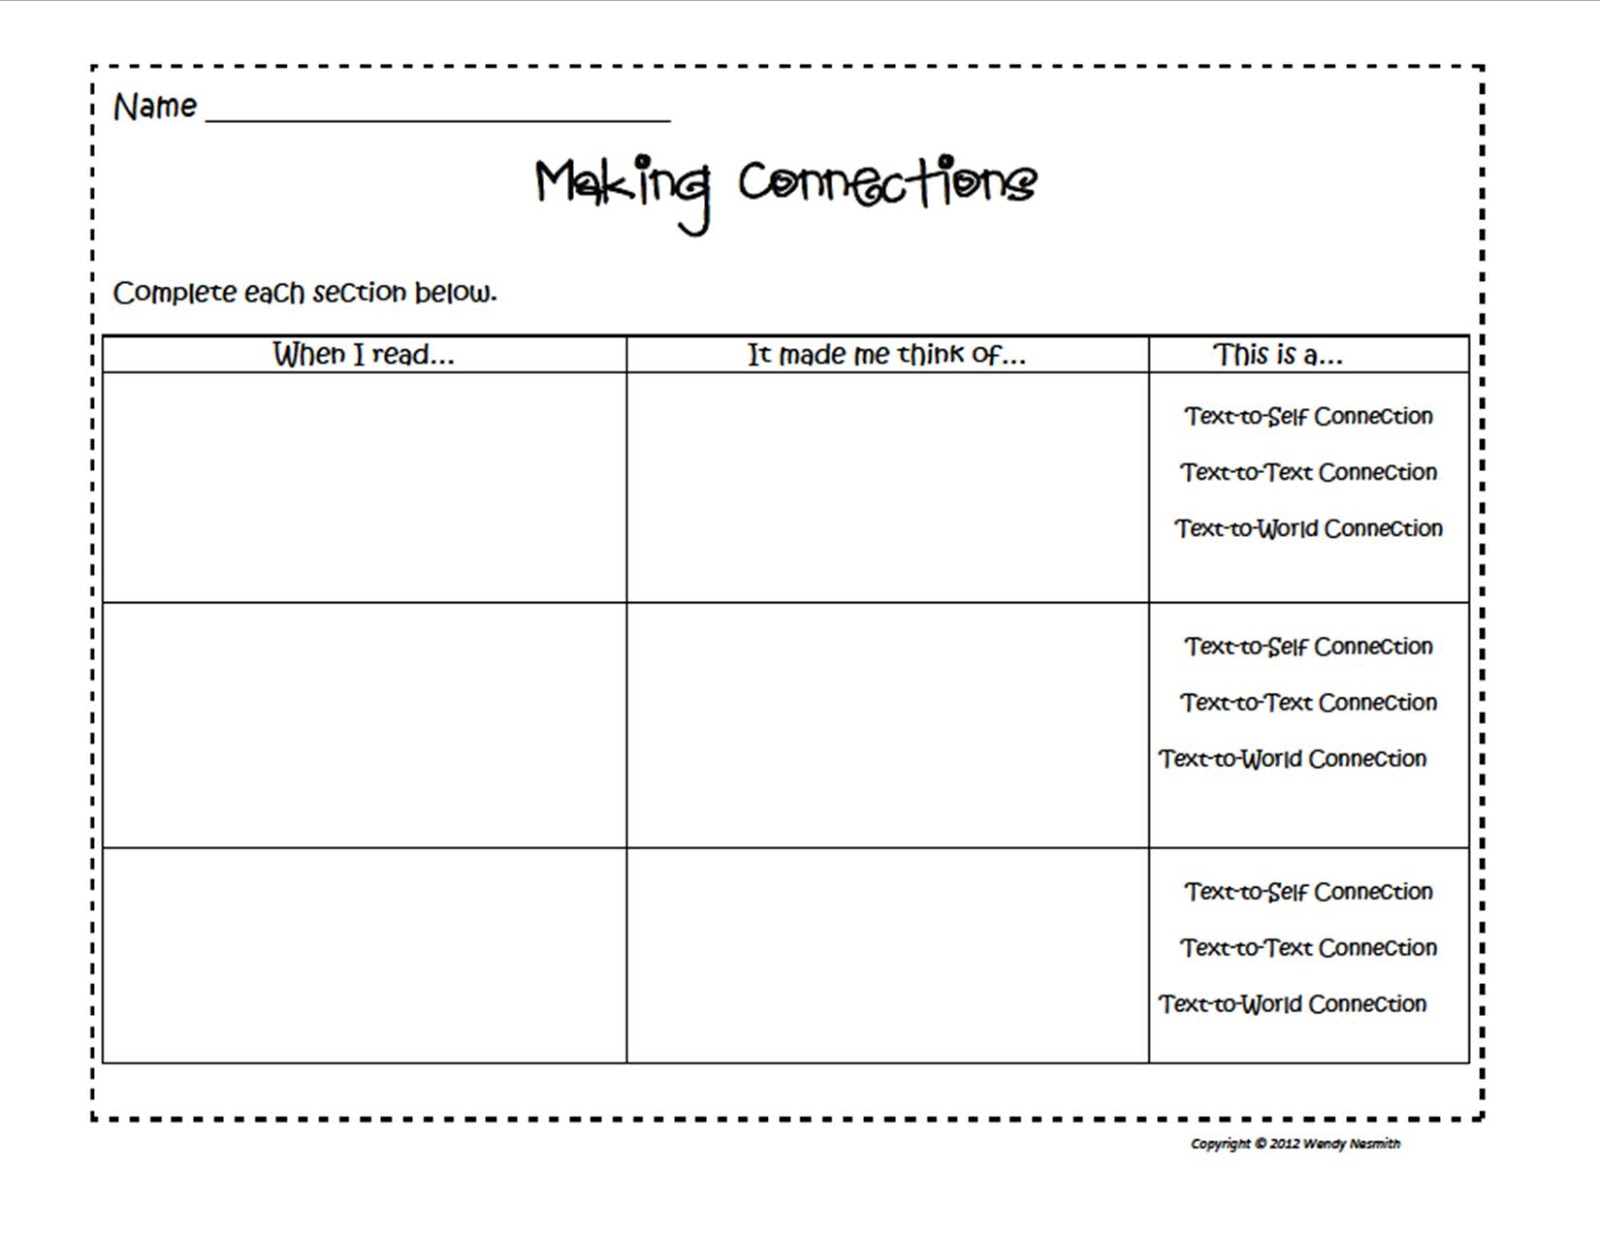 Our TellTaleBlog Having Reflections Making Connections – Text to Text Connections Worksheet